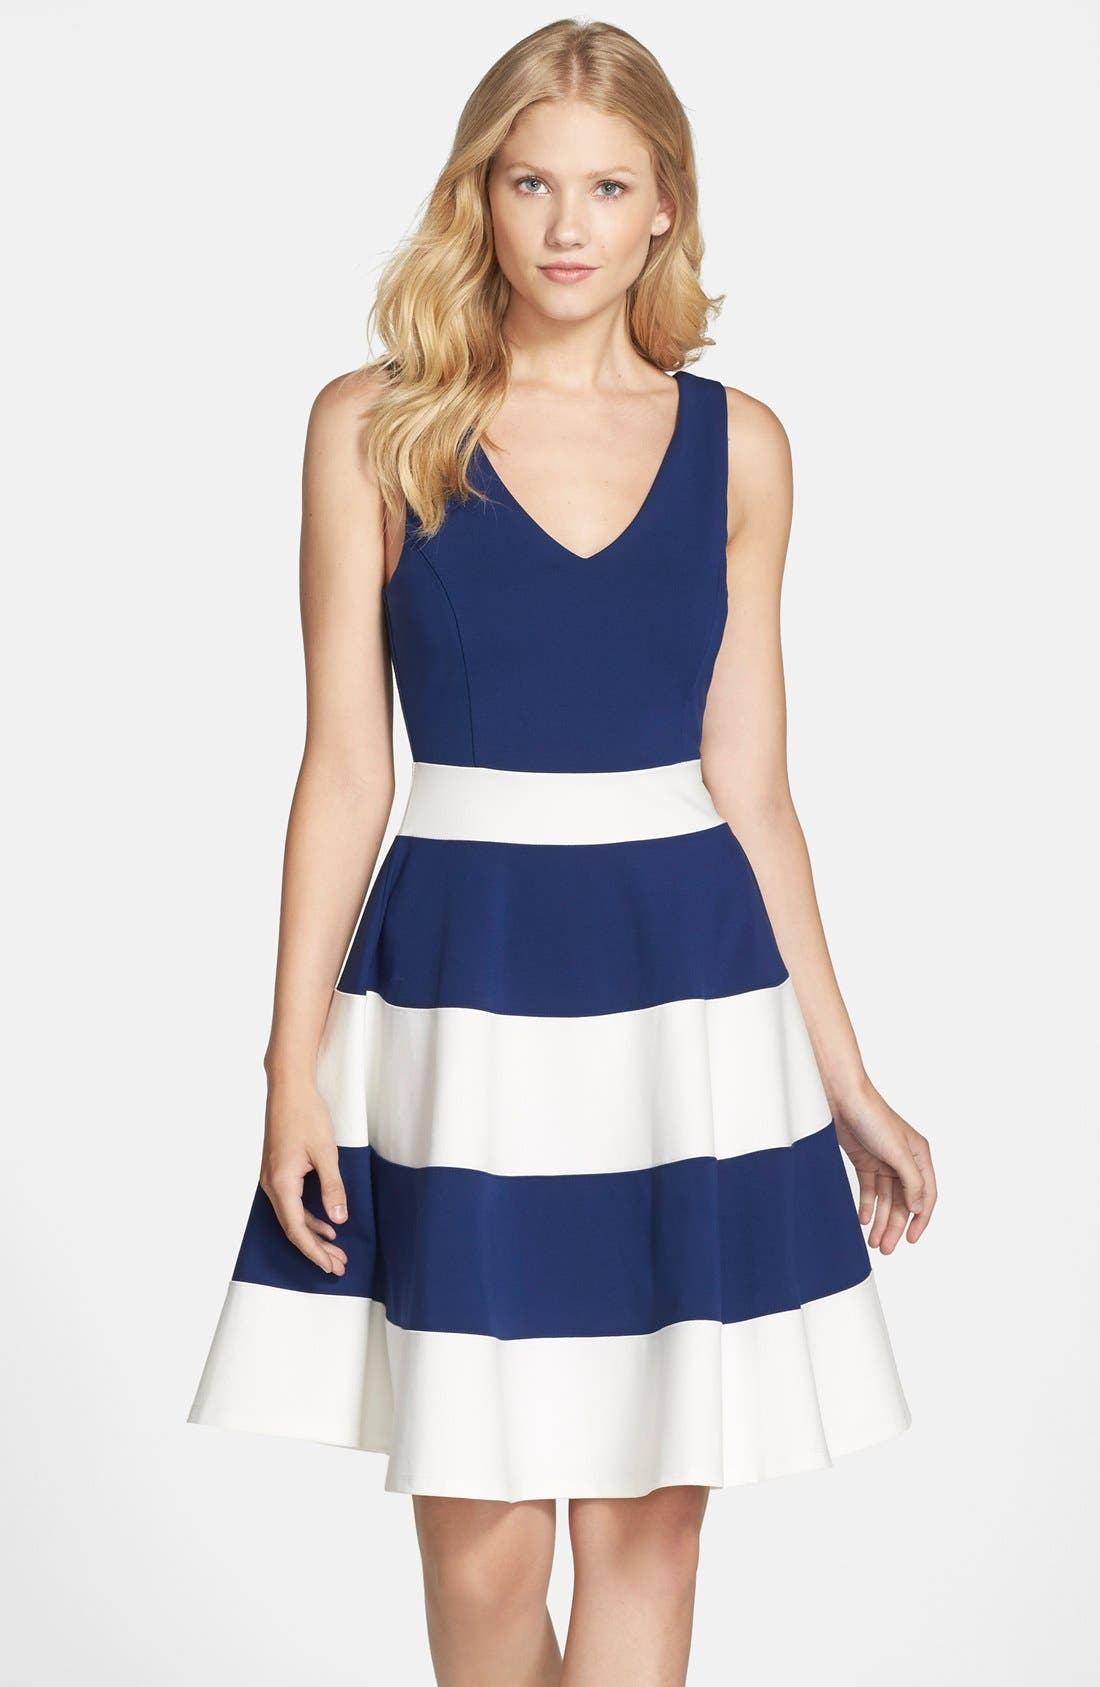 Felicity & Coco Sleeveless Fit & Flare Dress (Regular & Petite)(Nordstrom Exclusive)